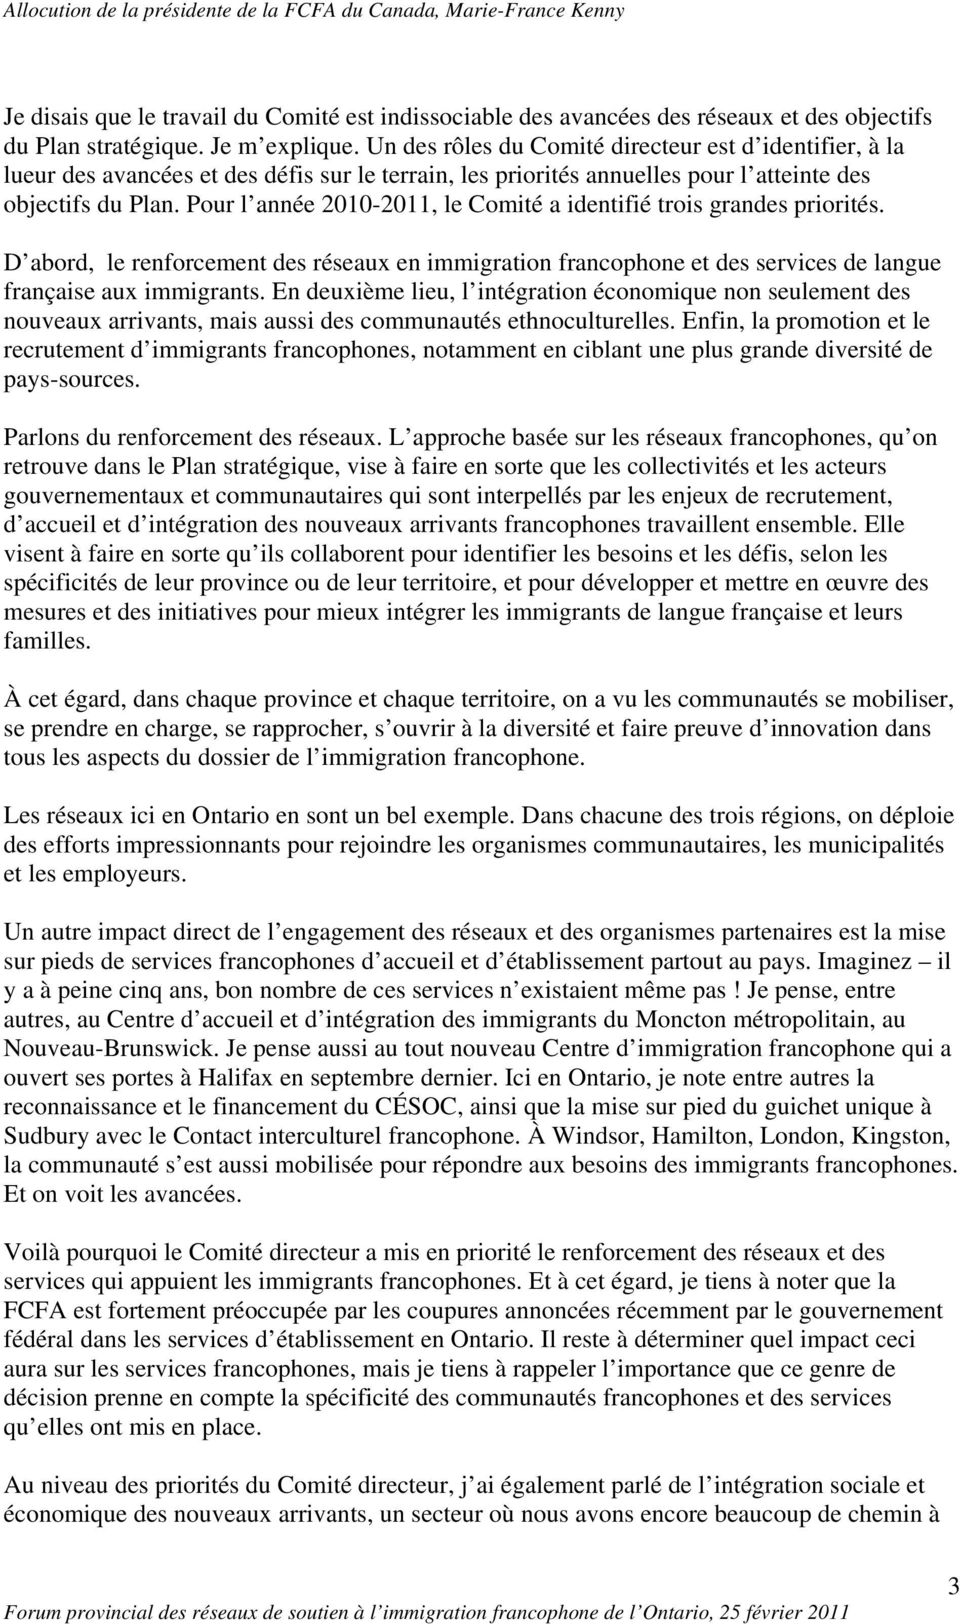 Notes pour une allocution de mme marie france kenny - Office francaise d immigration et d integration ...